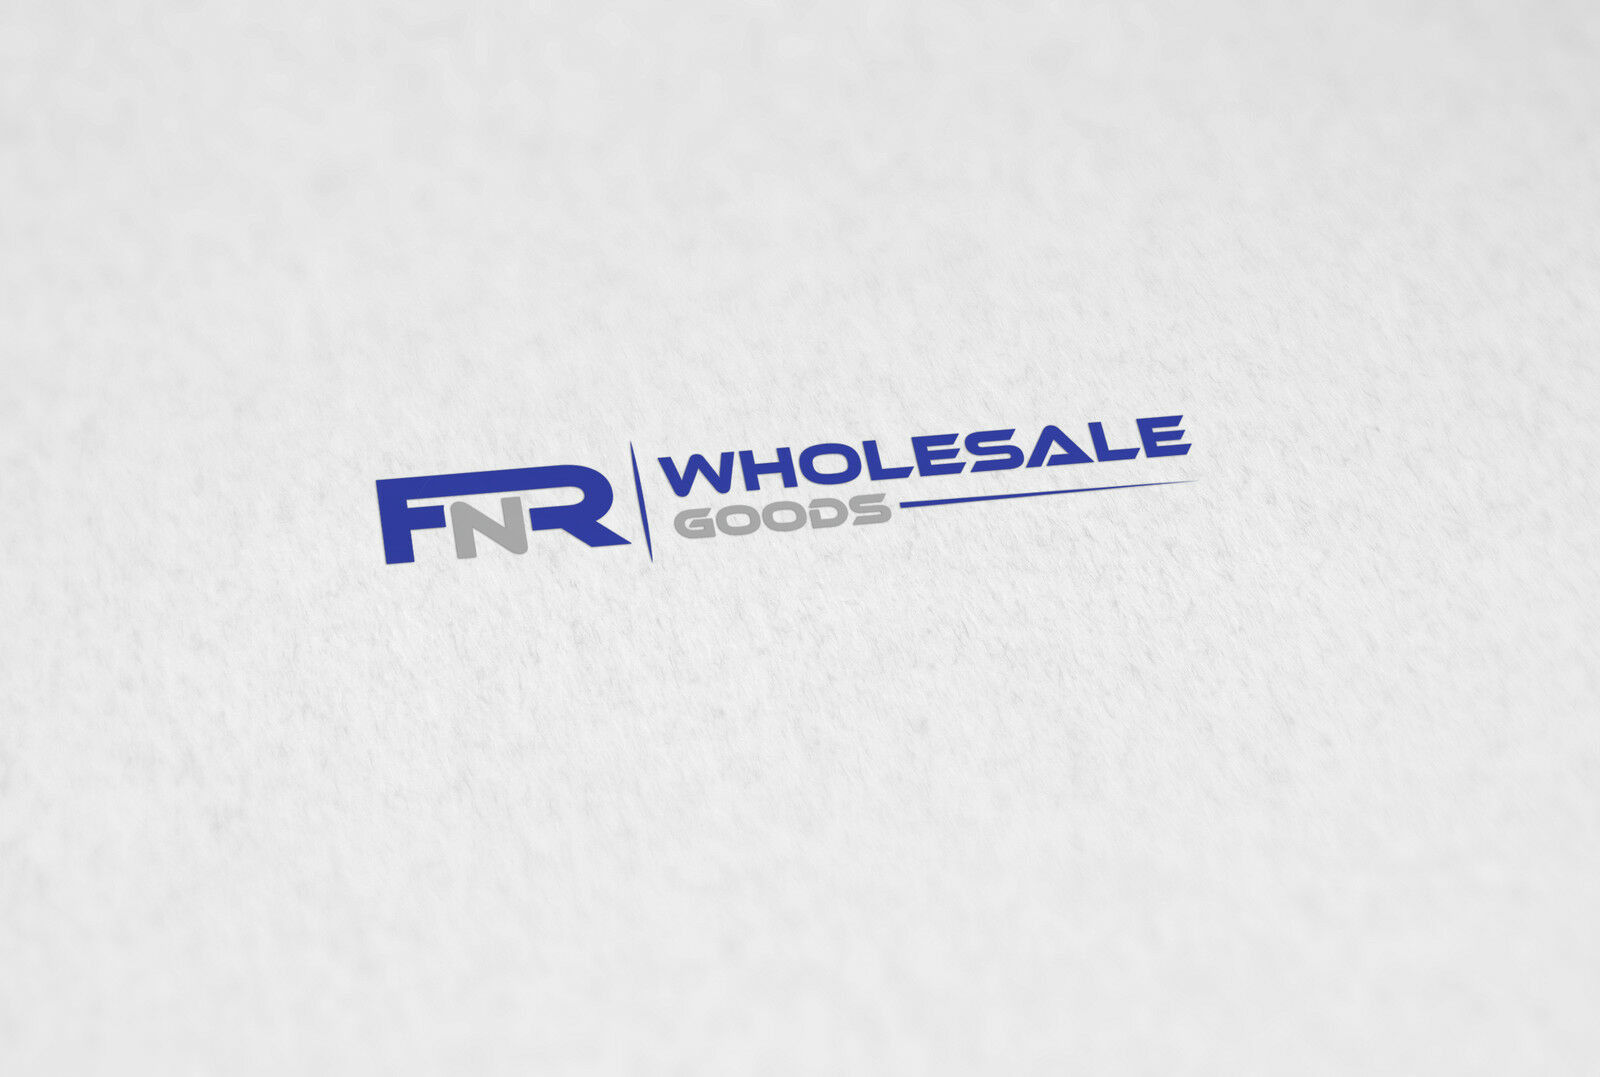 FNR WHOLESALE GOODS